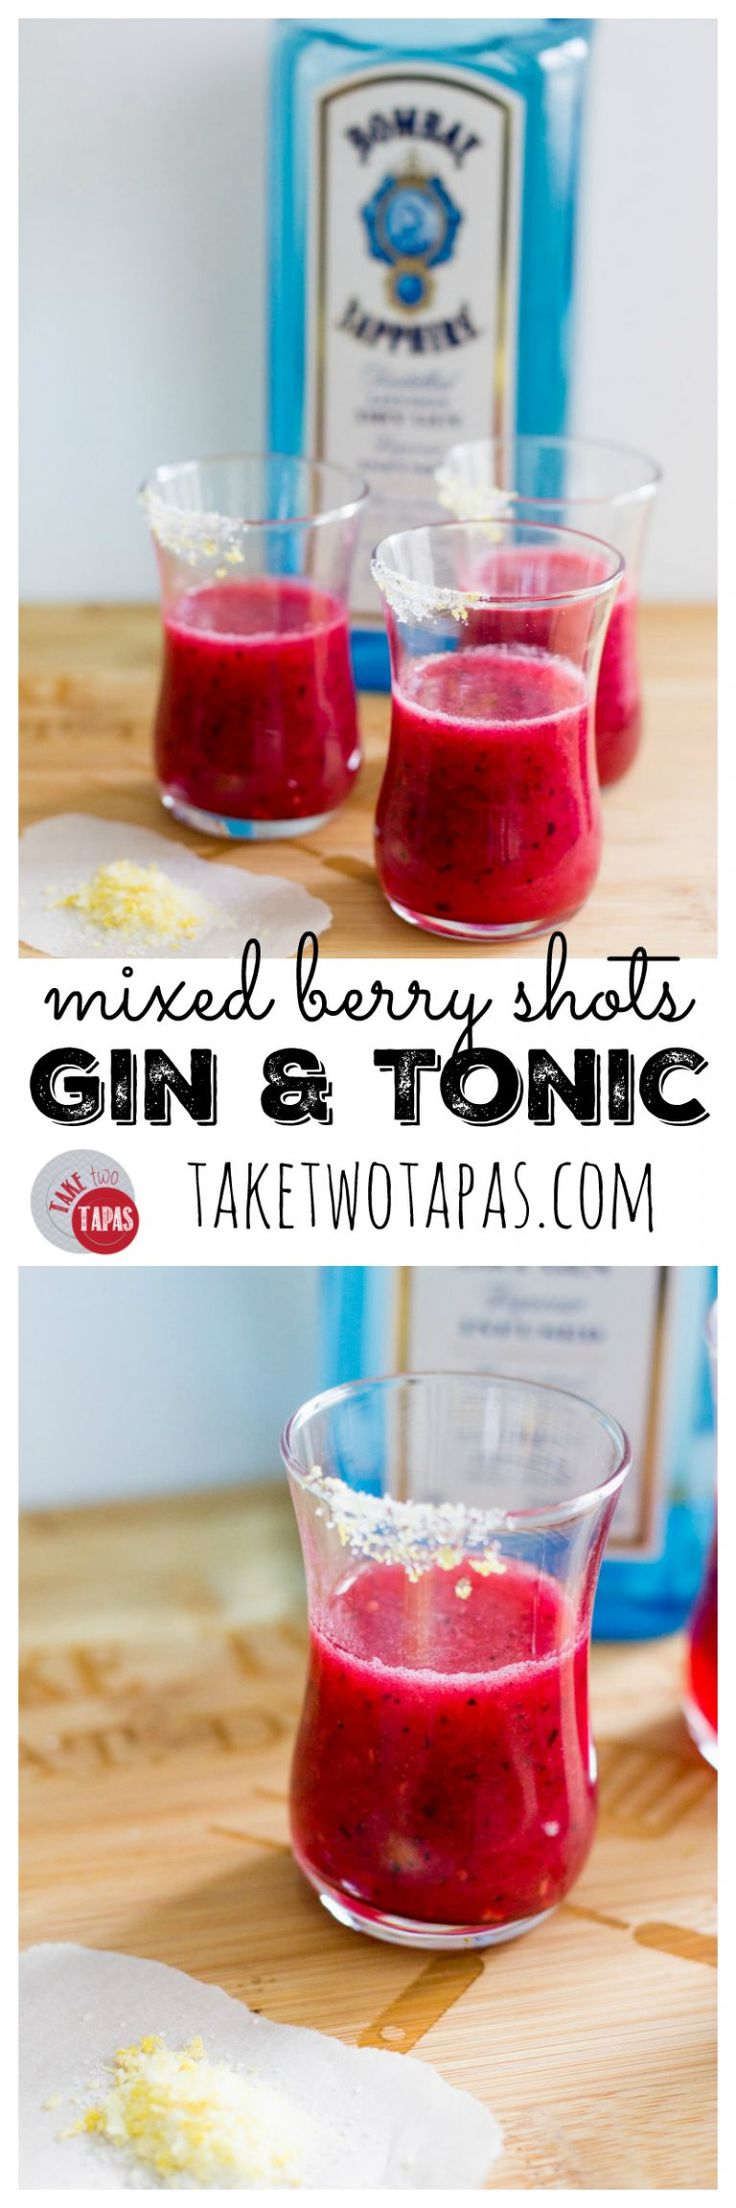 The tart and herb flavors of a classic gin and tonic are